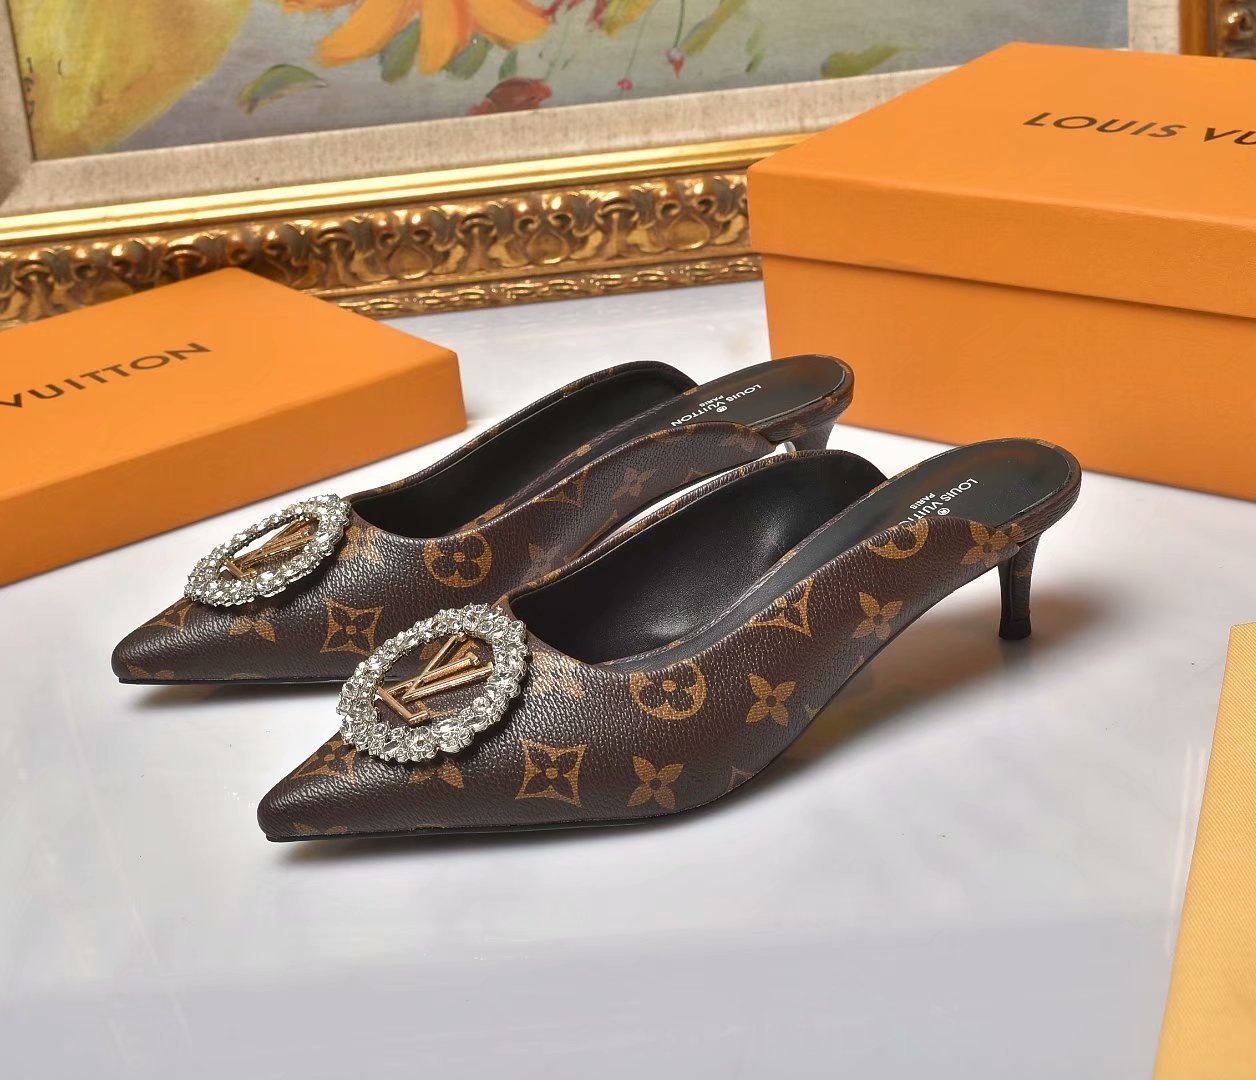 Image of lv louis vuitton women casual shoes boots fashionable casual leather women heels sandal shoes 51